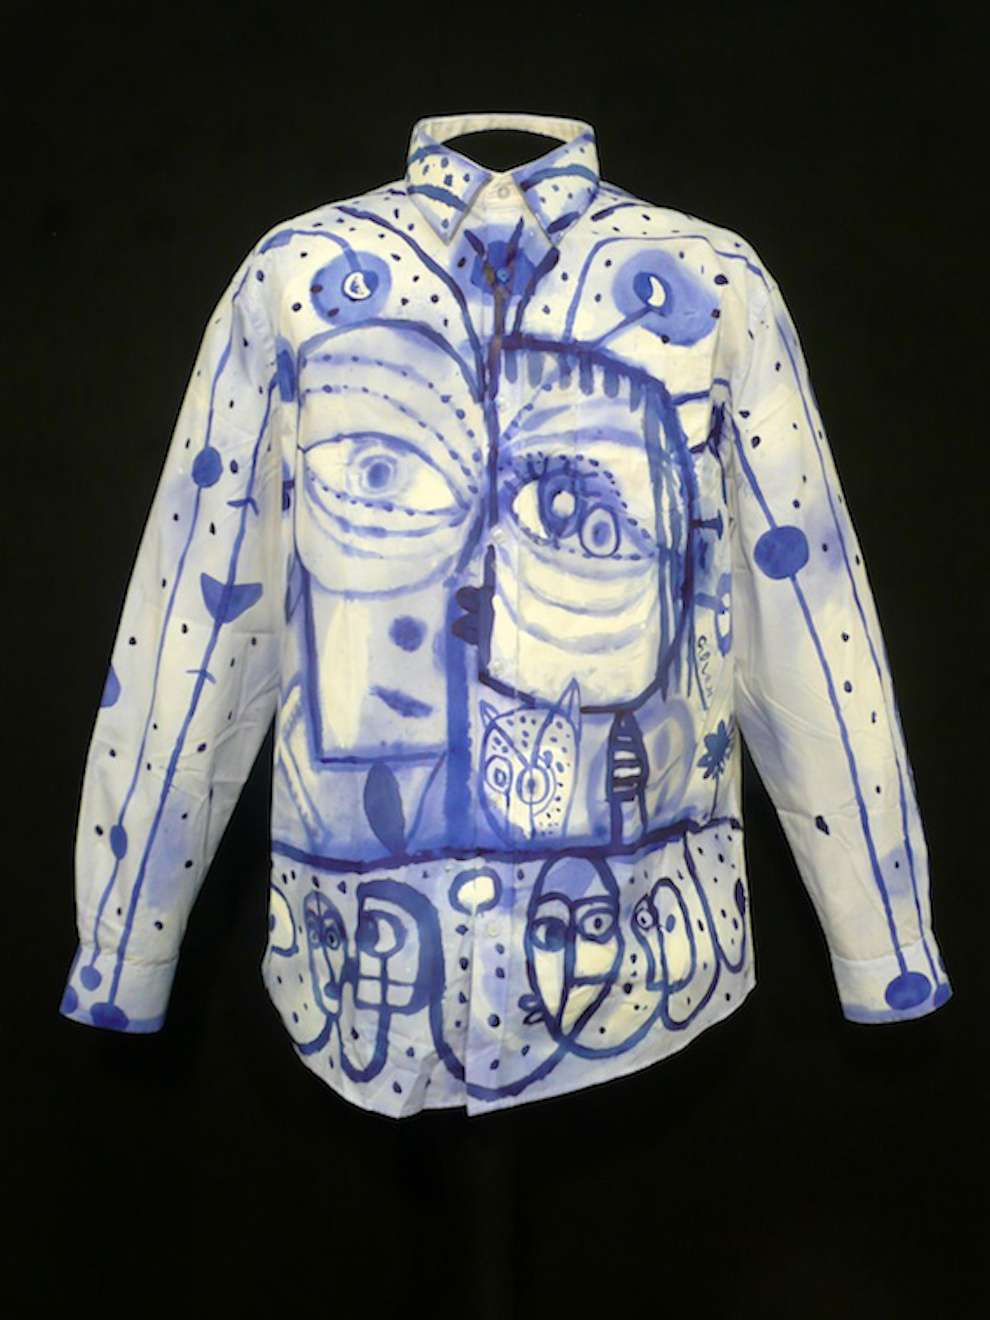 Chris Gilvan Cartwright, Hand-painted on shirt